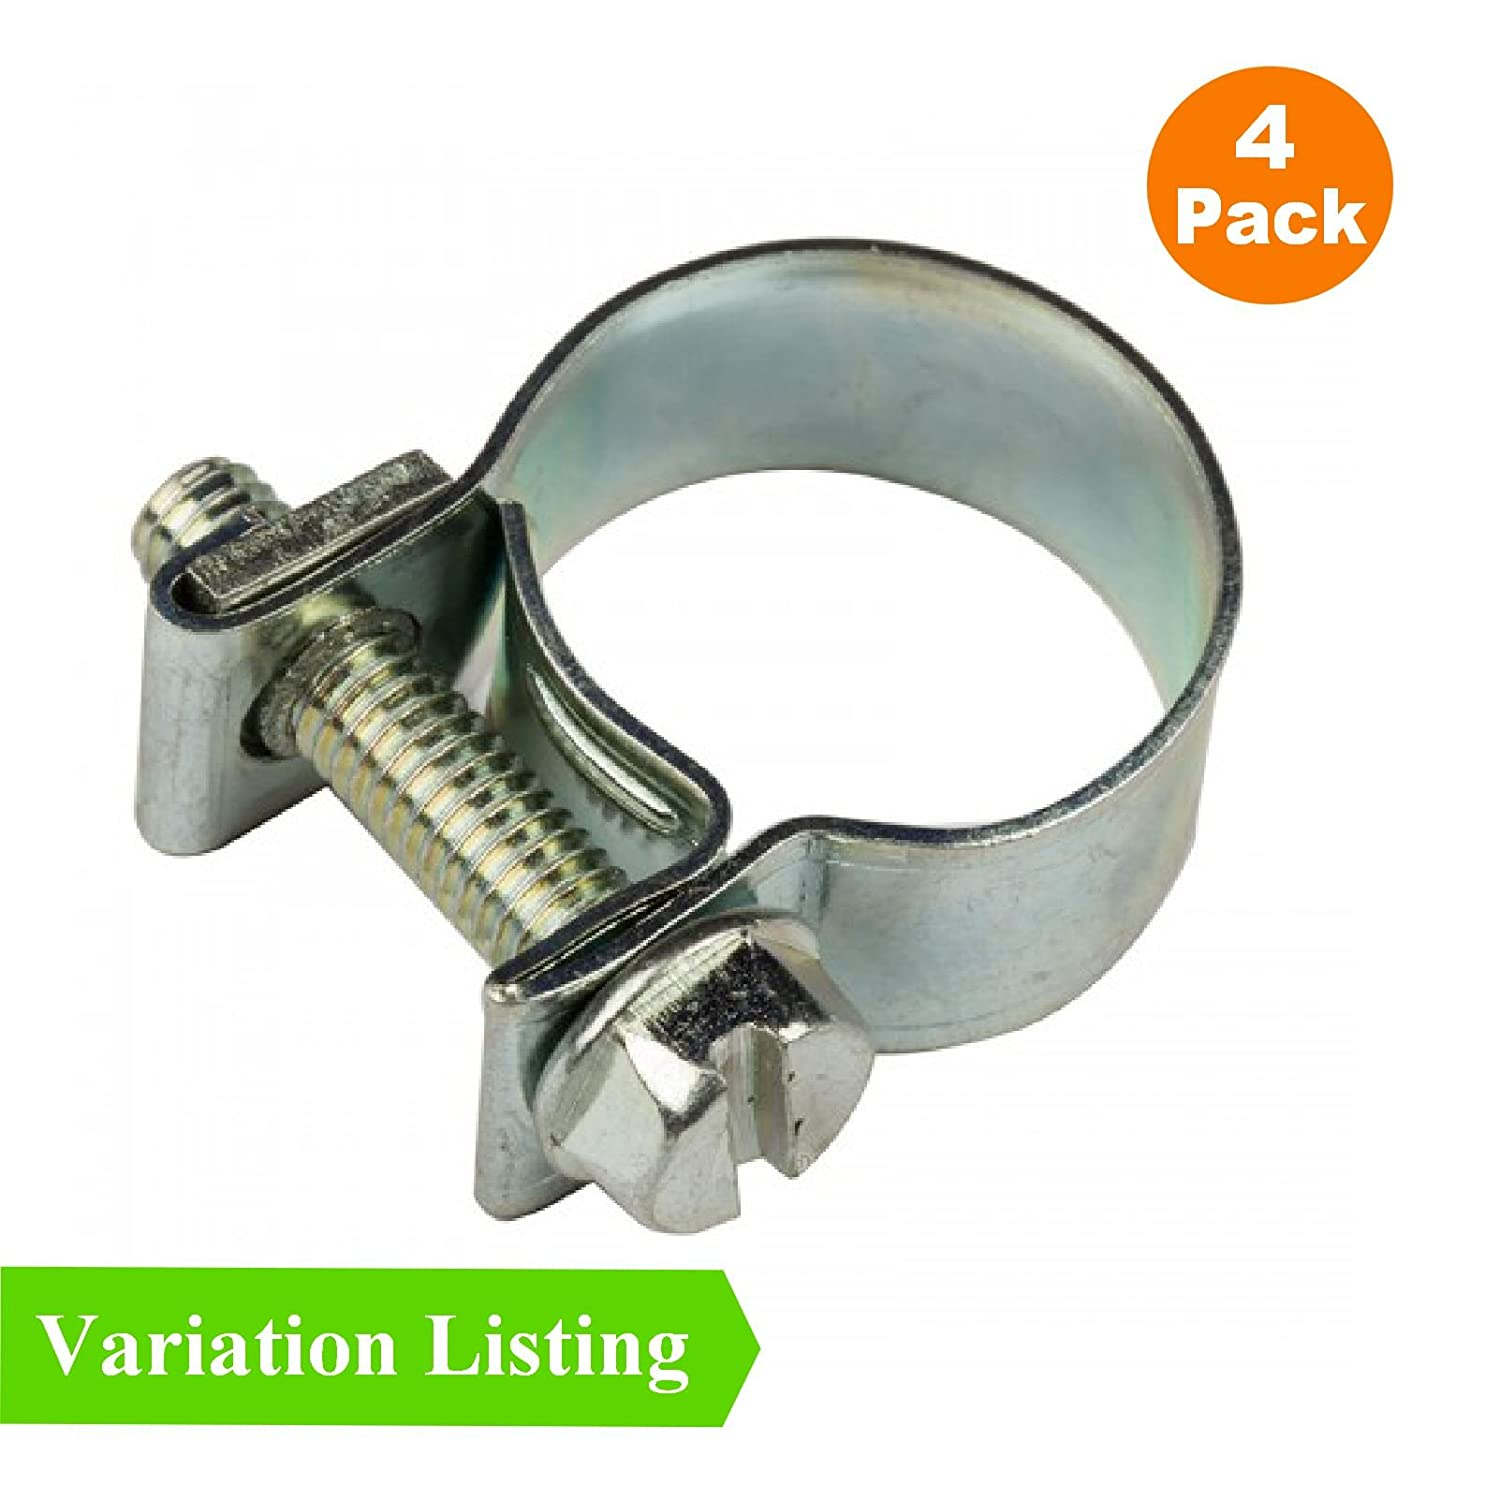 Homesmart Stage-A77-Var 4 x Mini Fuel Line Jubilee Hose Clips Clamps Diesel Petrol Pipe Coolant Radiator, 9 - 11mm